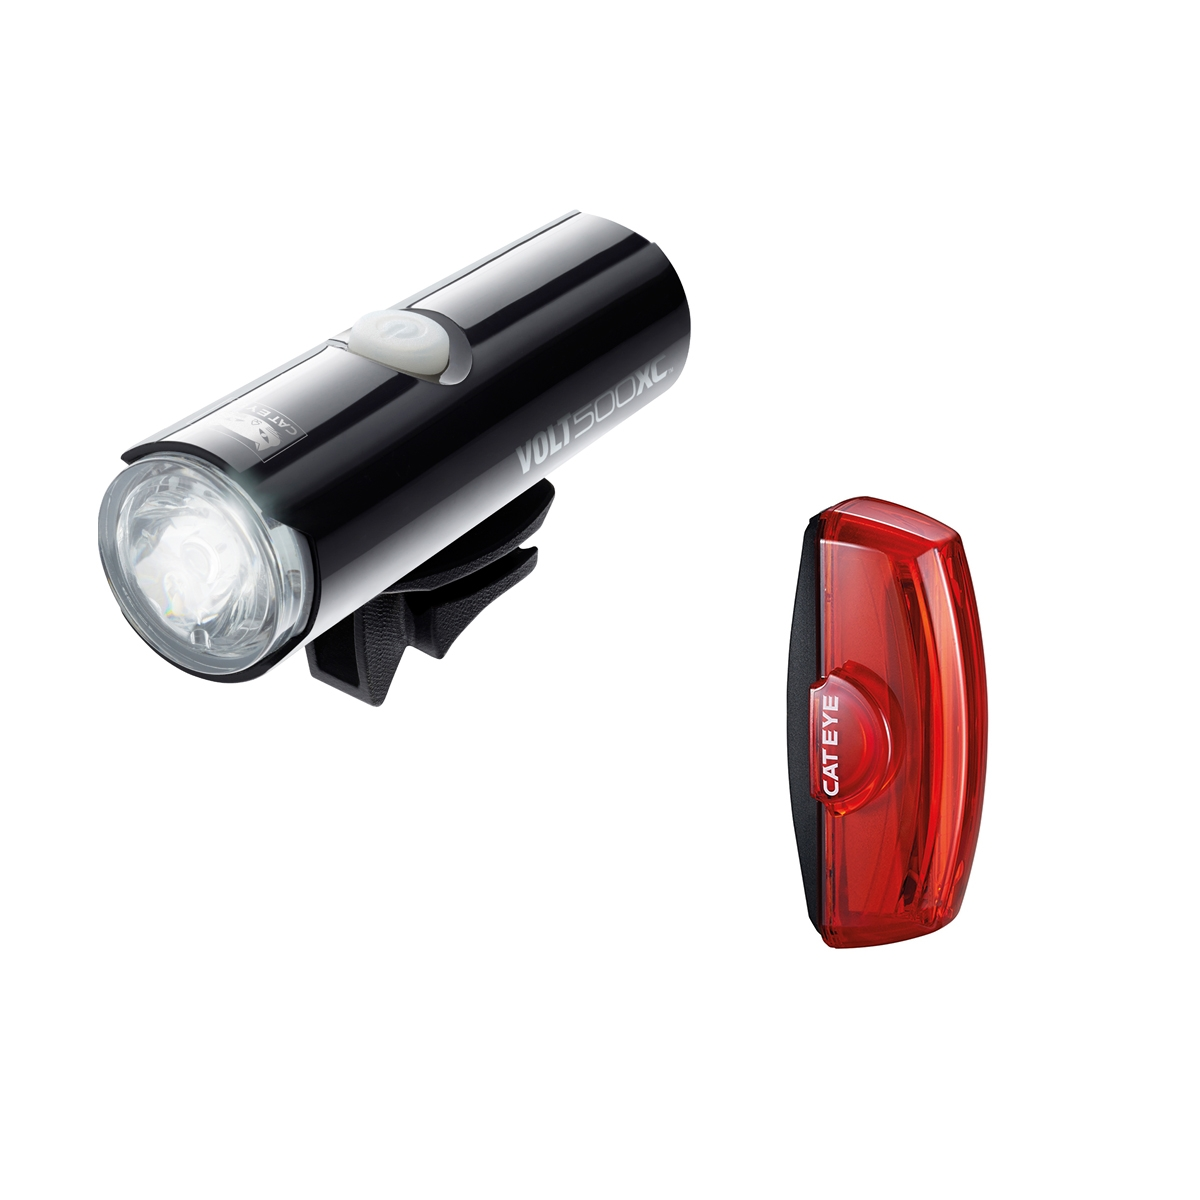 Cateye Volt 500 XC Front and Rapid X2 Rear LED Lightset